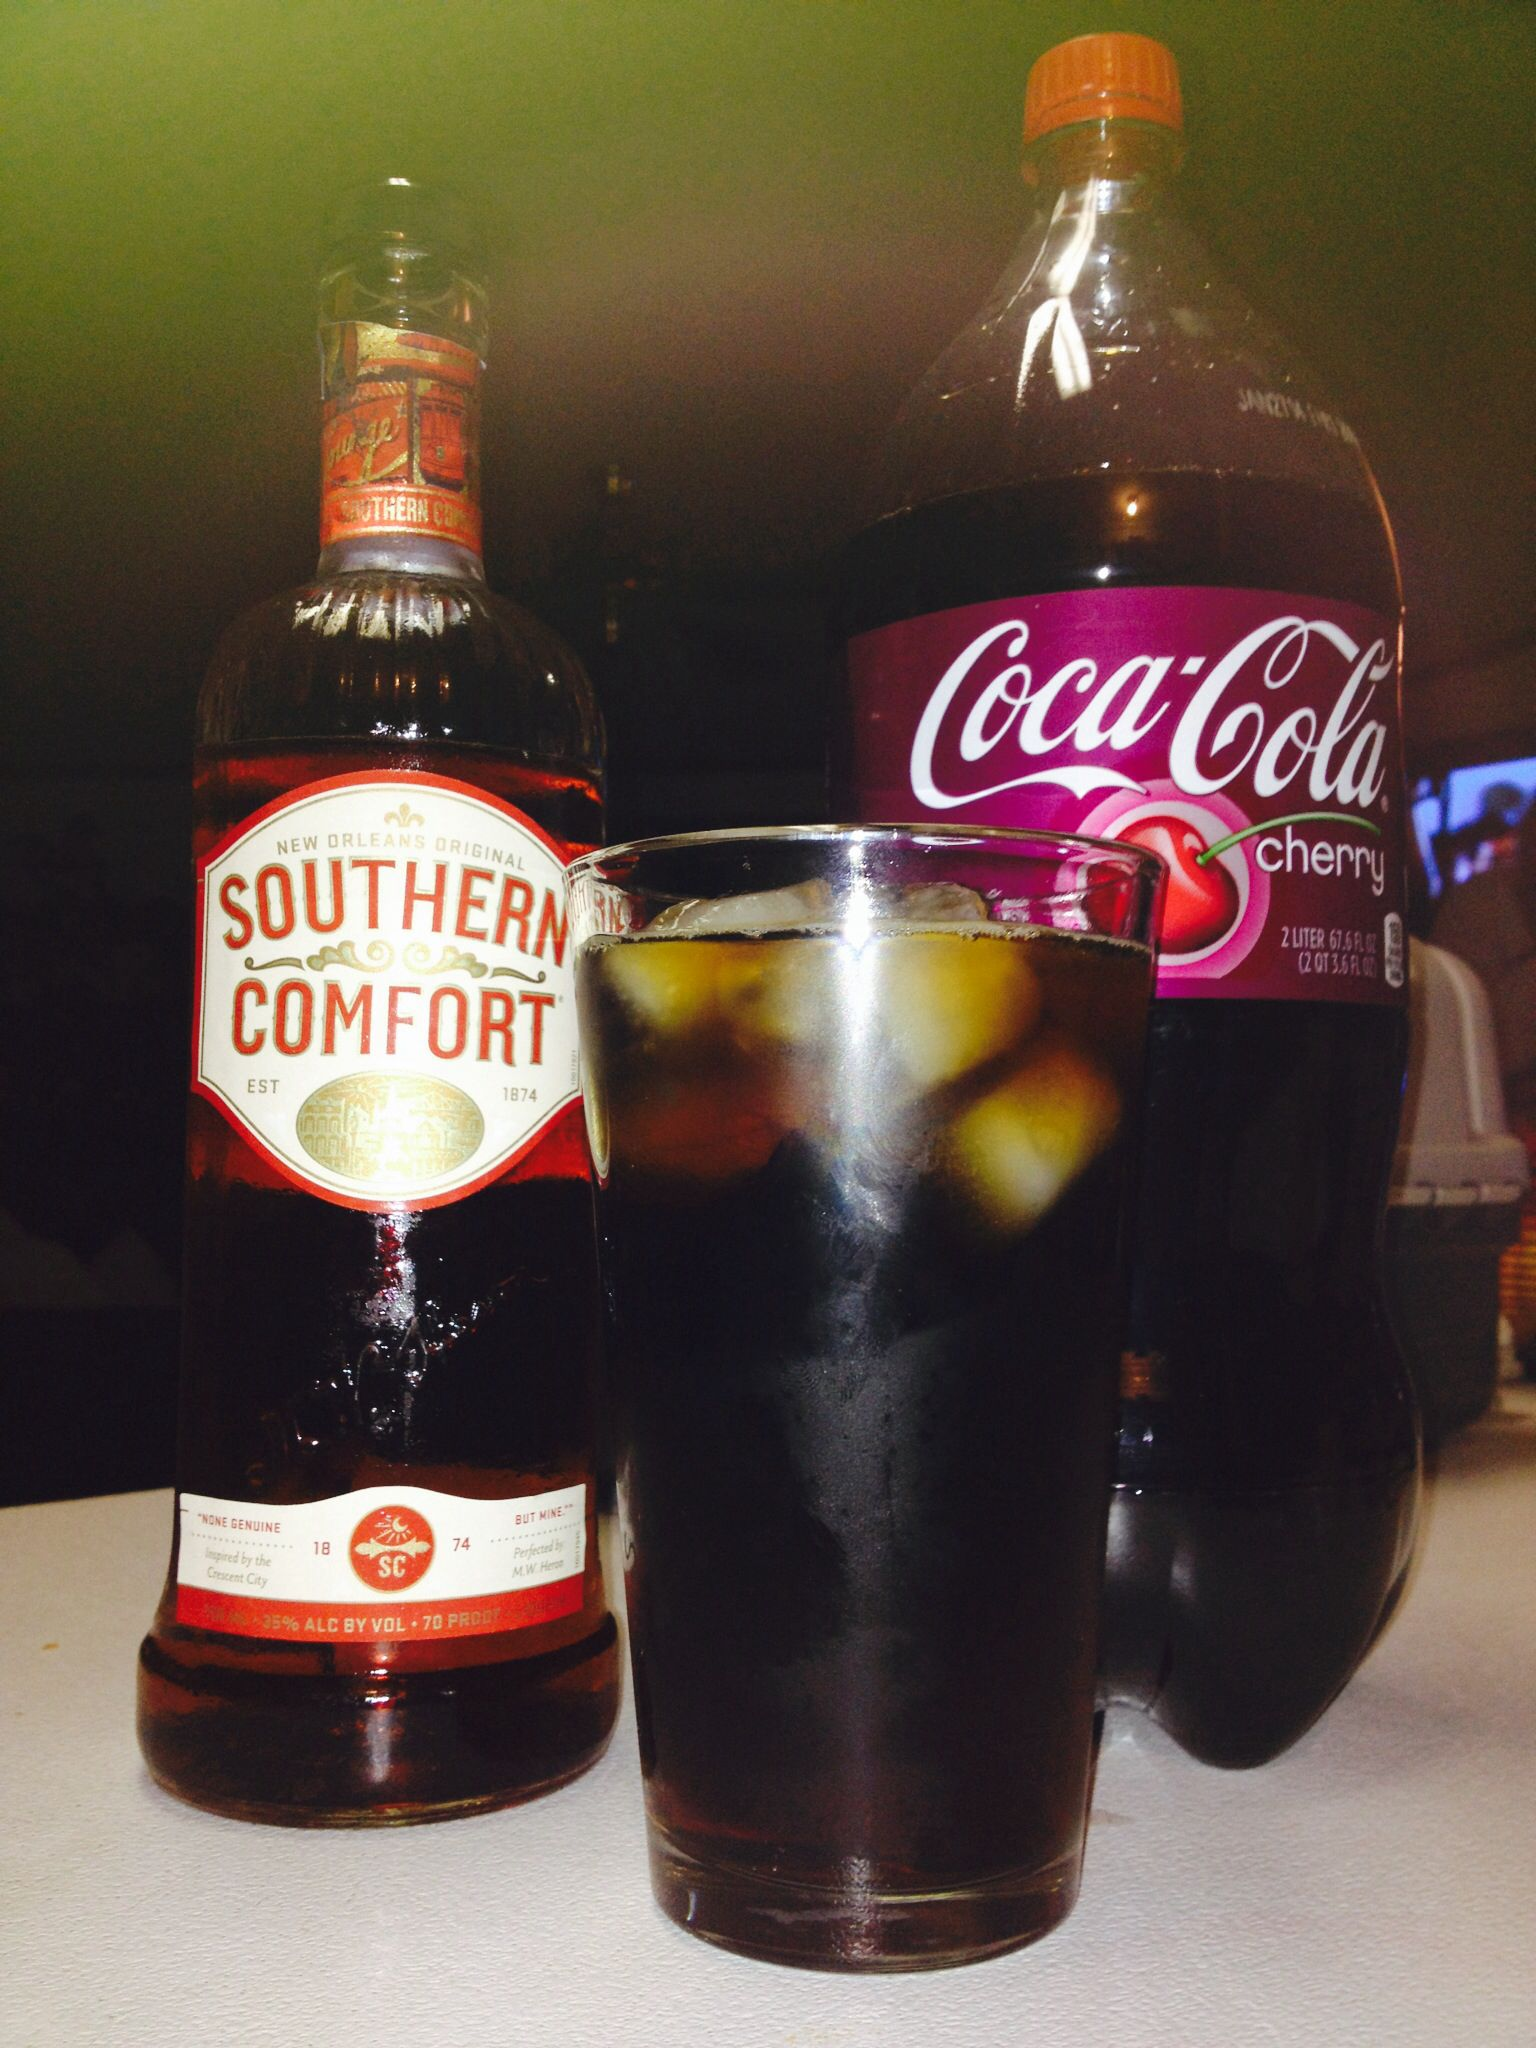 Southern Comfort Cherry Coke Good Times Liquor Drinks Drinks Southern Comfort